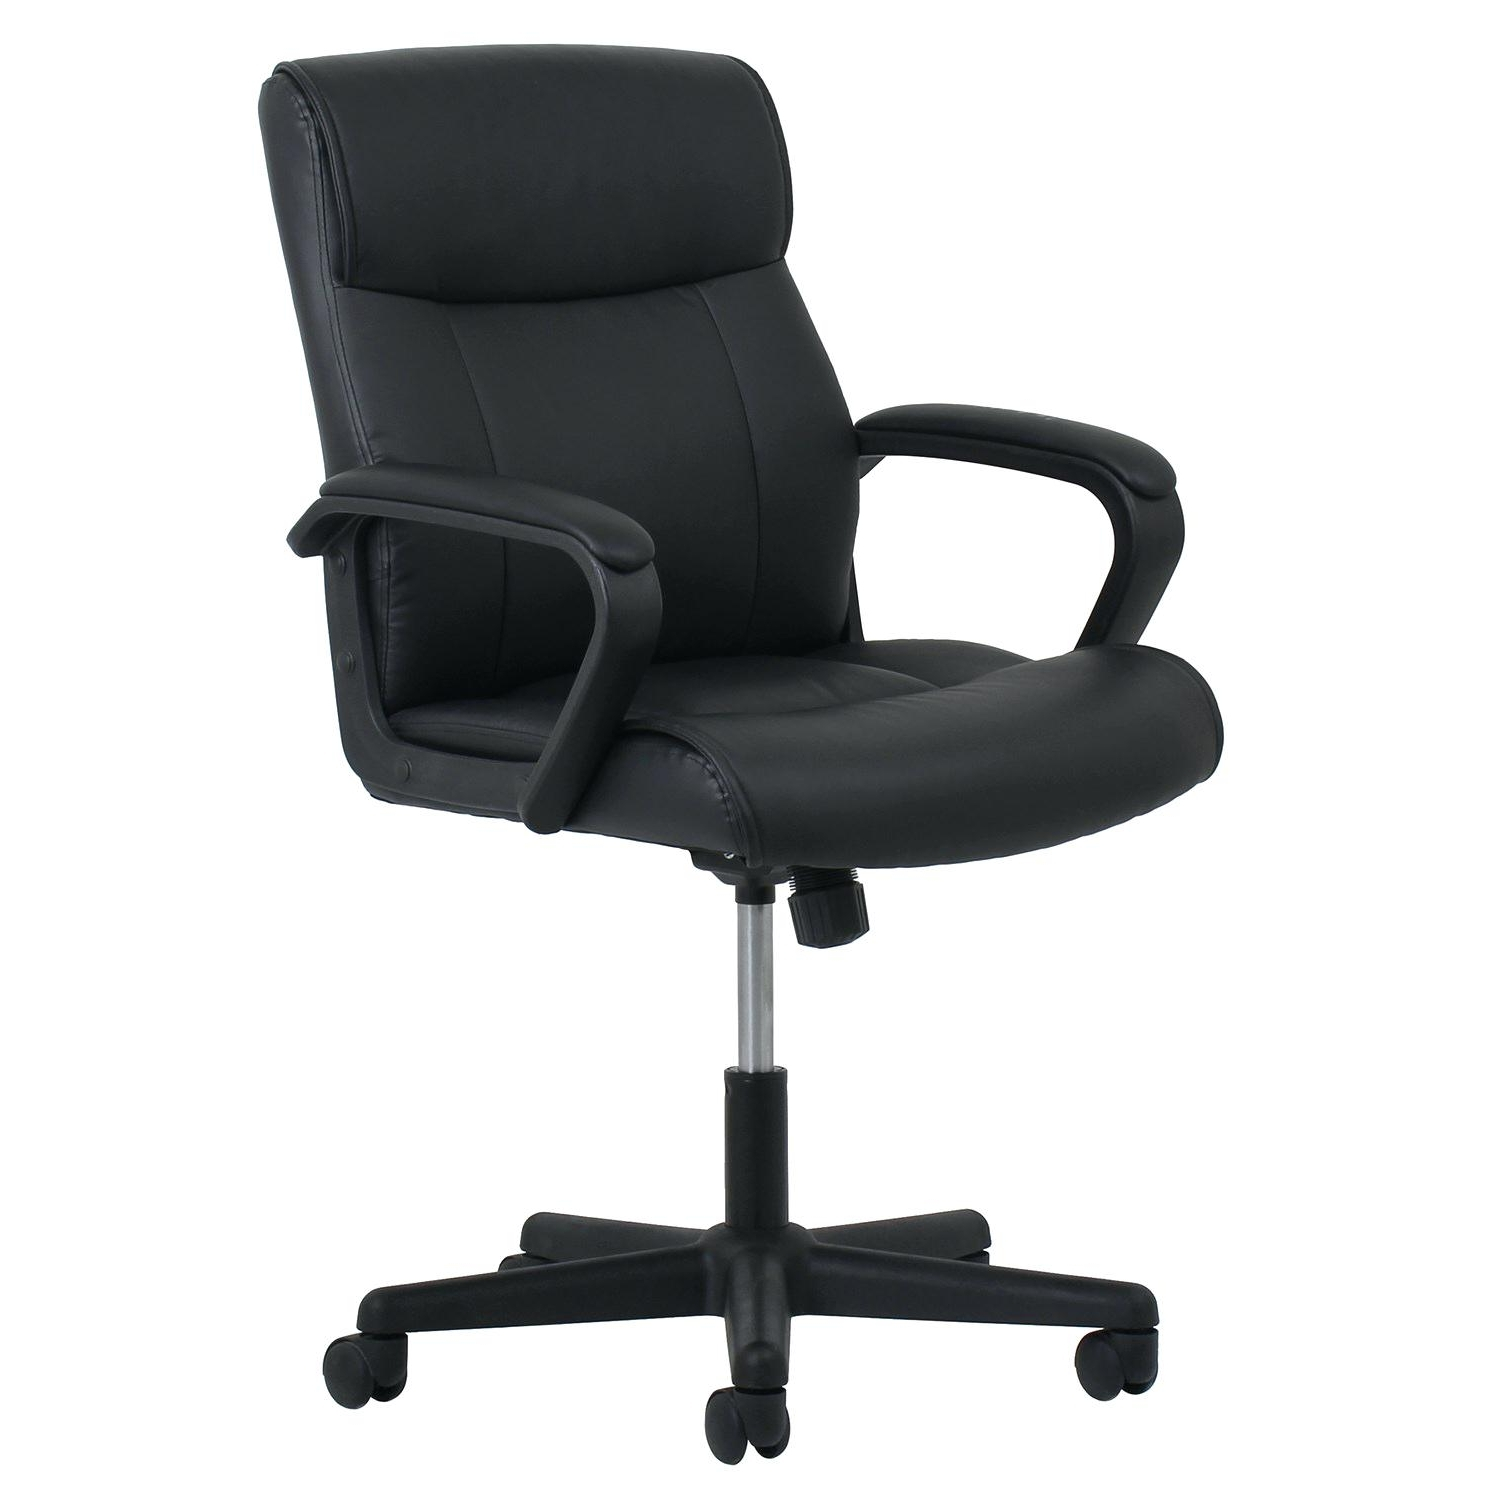 Well Known Executive Office Chair – Ncgeconference With Regard To Executive Office Chairs With Massage/heat (View 20 of 20)